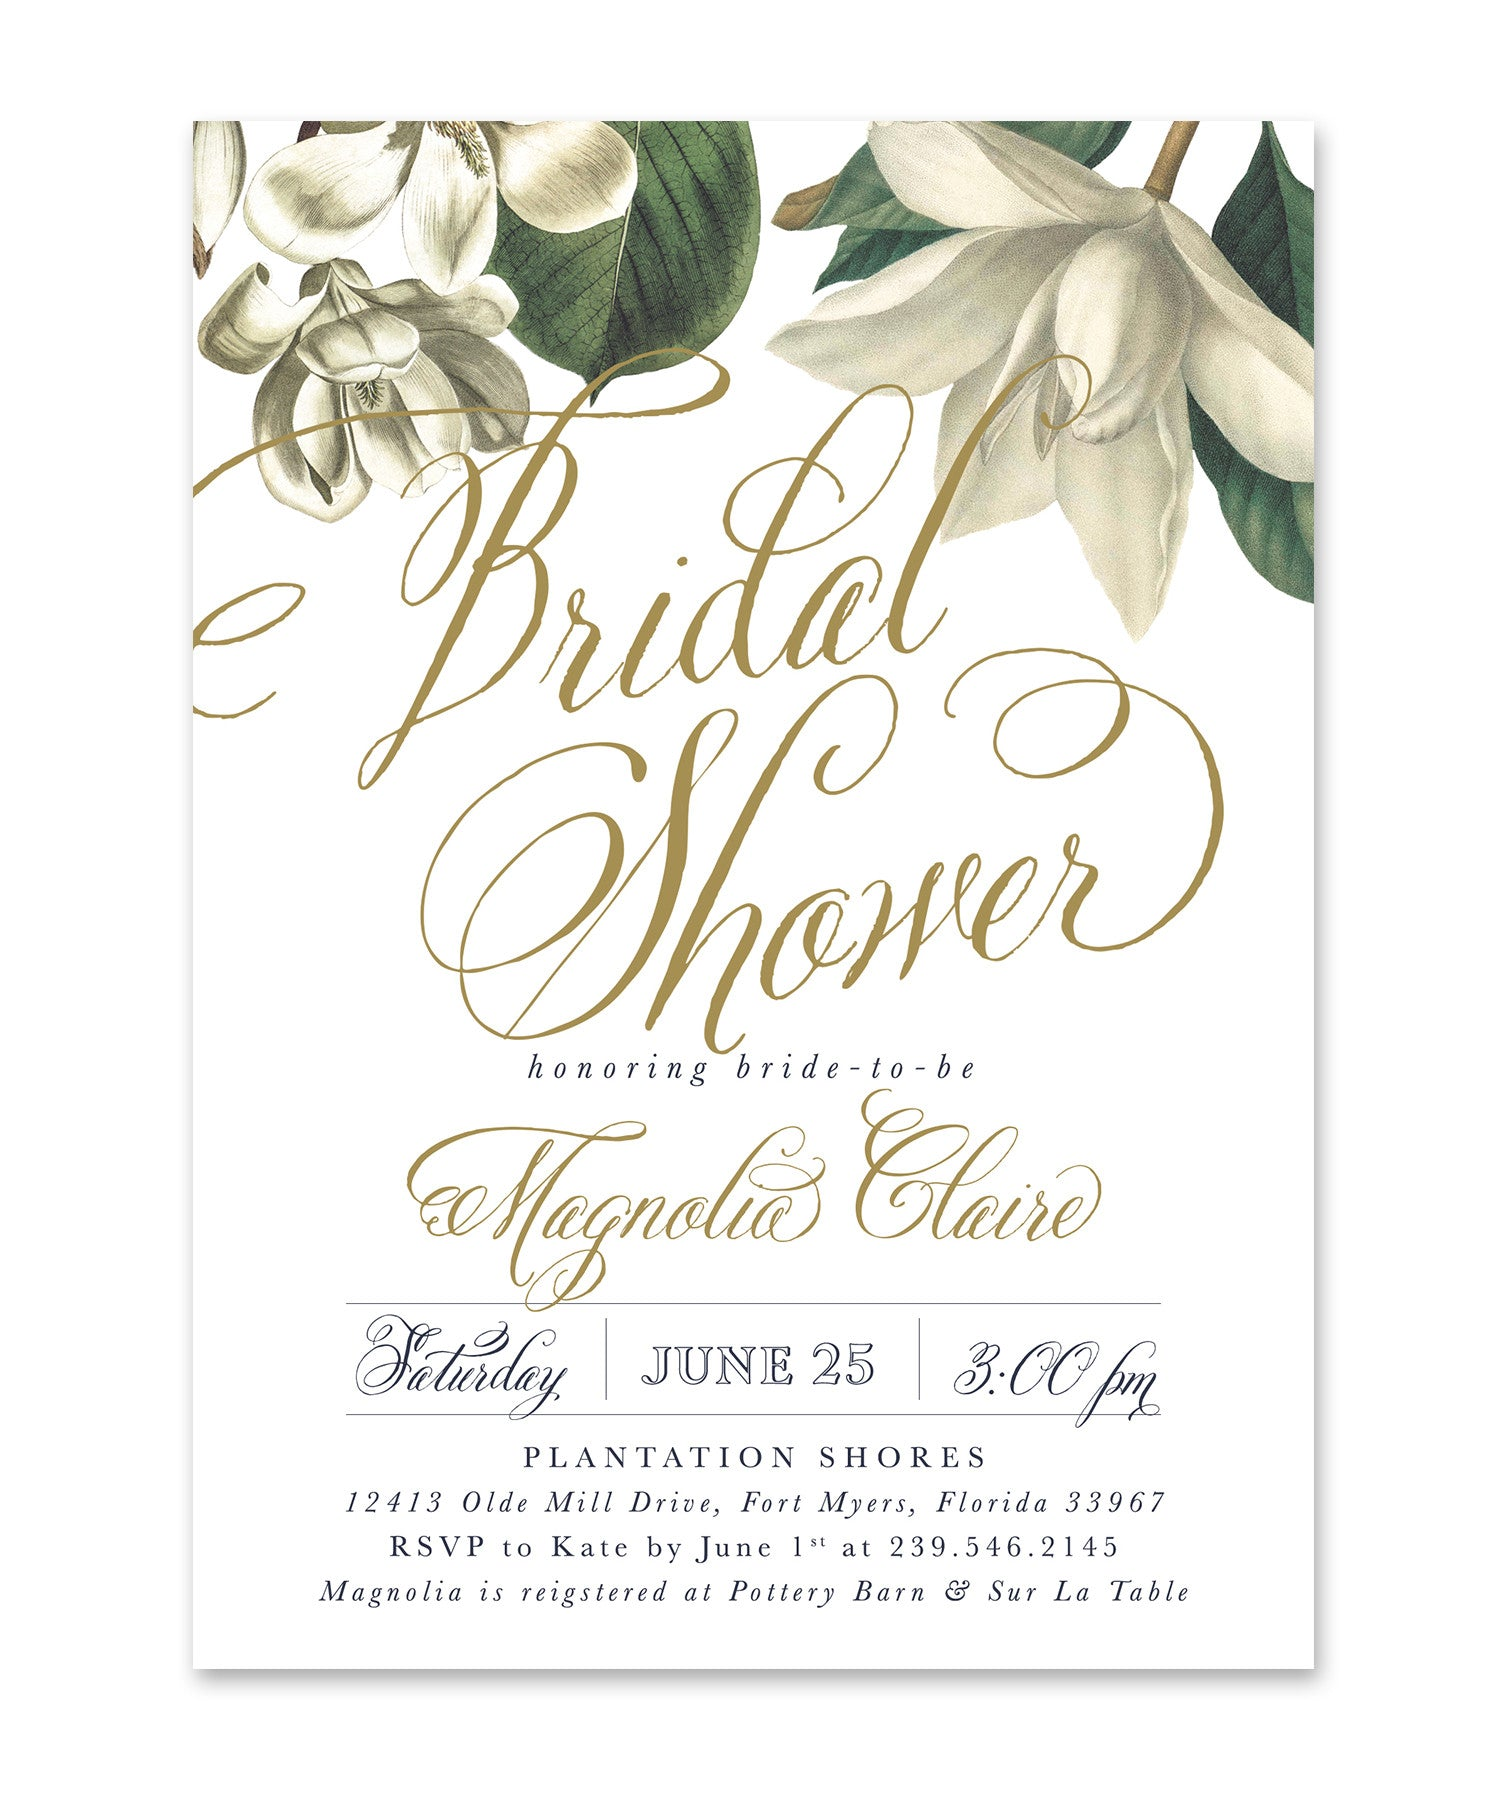 shower invitations floral products cards oyster listing with design handlettered wedding invites bridal pearl s invitation printable the fonts unique whimsical